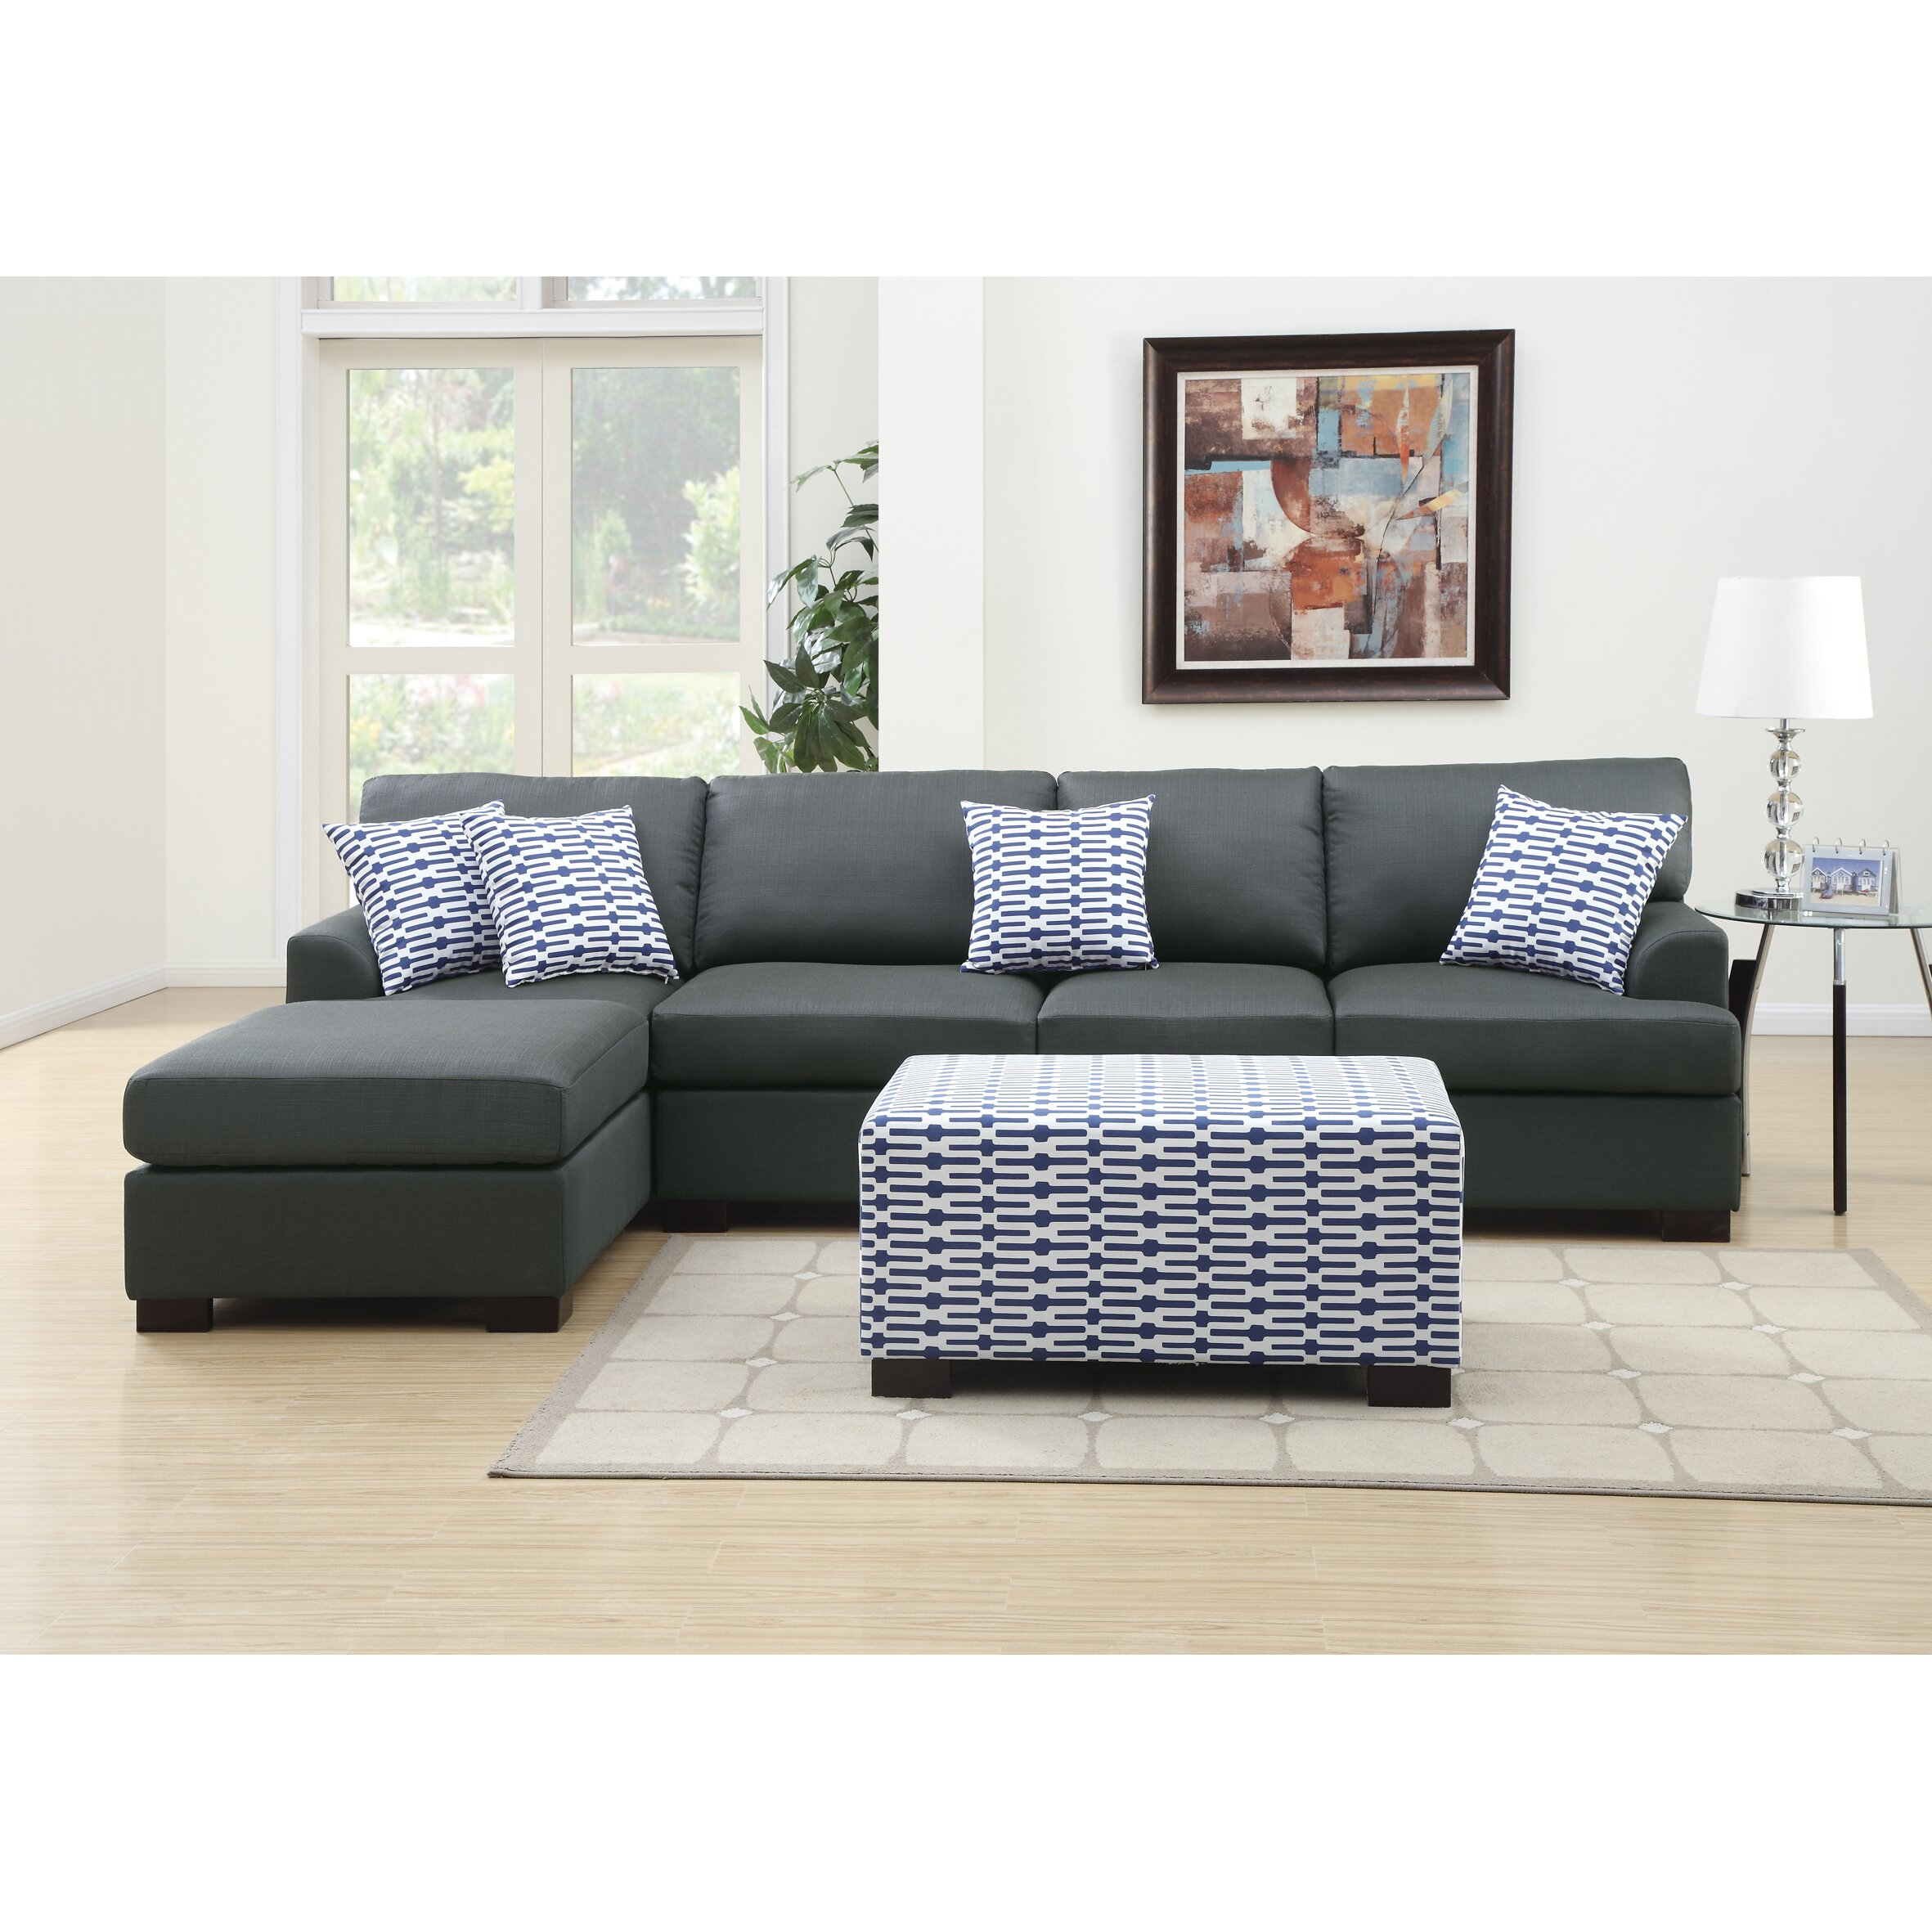 Poundex Sectional White Leather Sofa Chaise: Poundex Bobkona Cayden Reversible Chaise Sectional